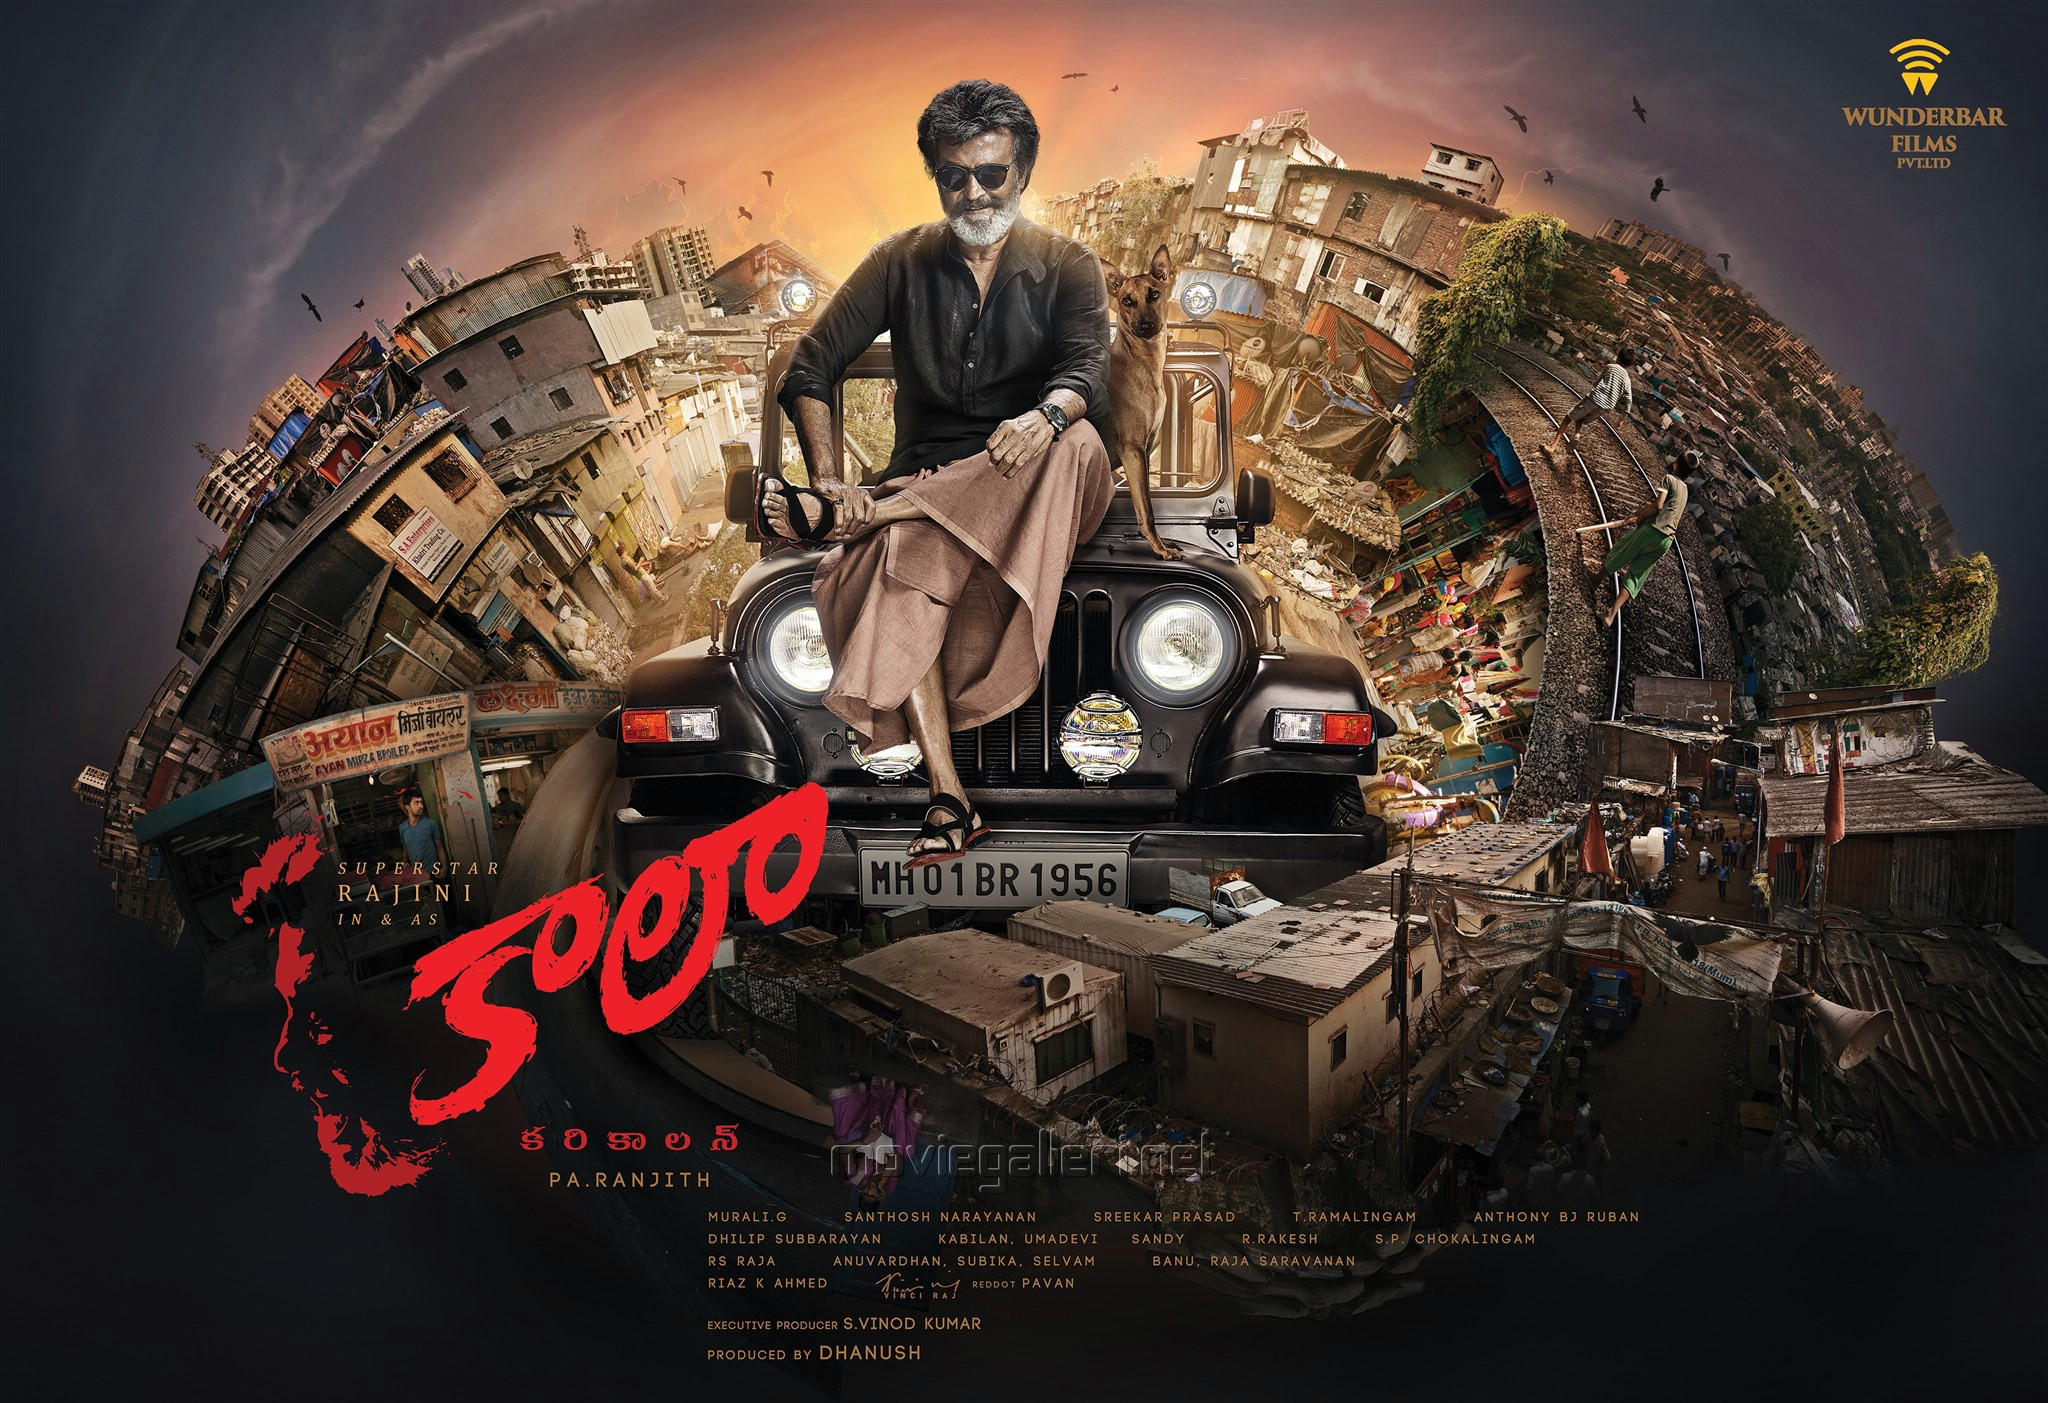 Kaala Rajinikanth First Look Wallpapers HD